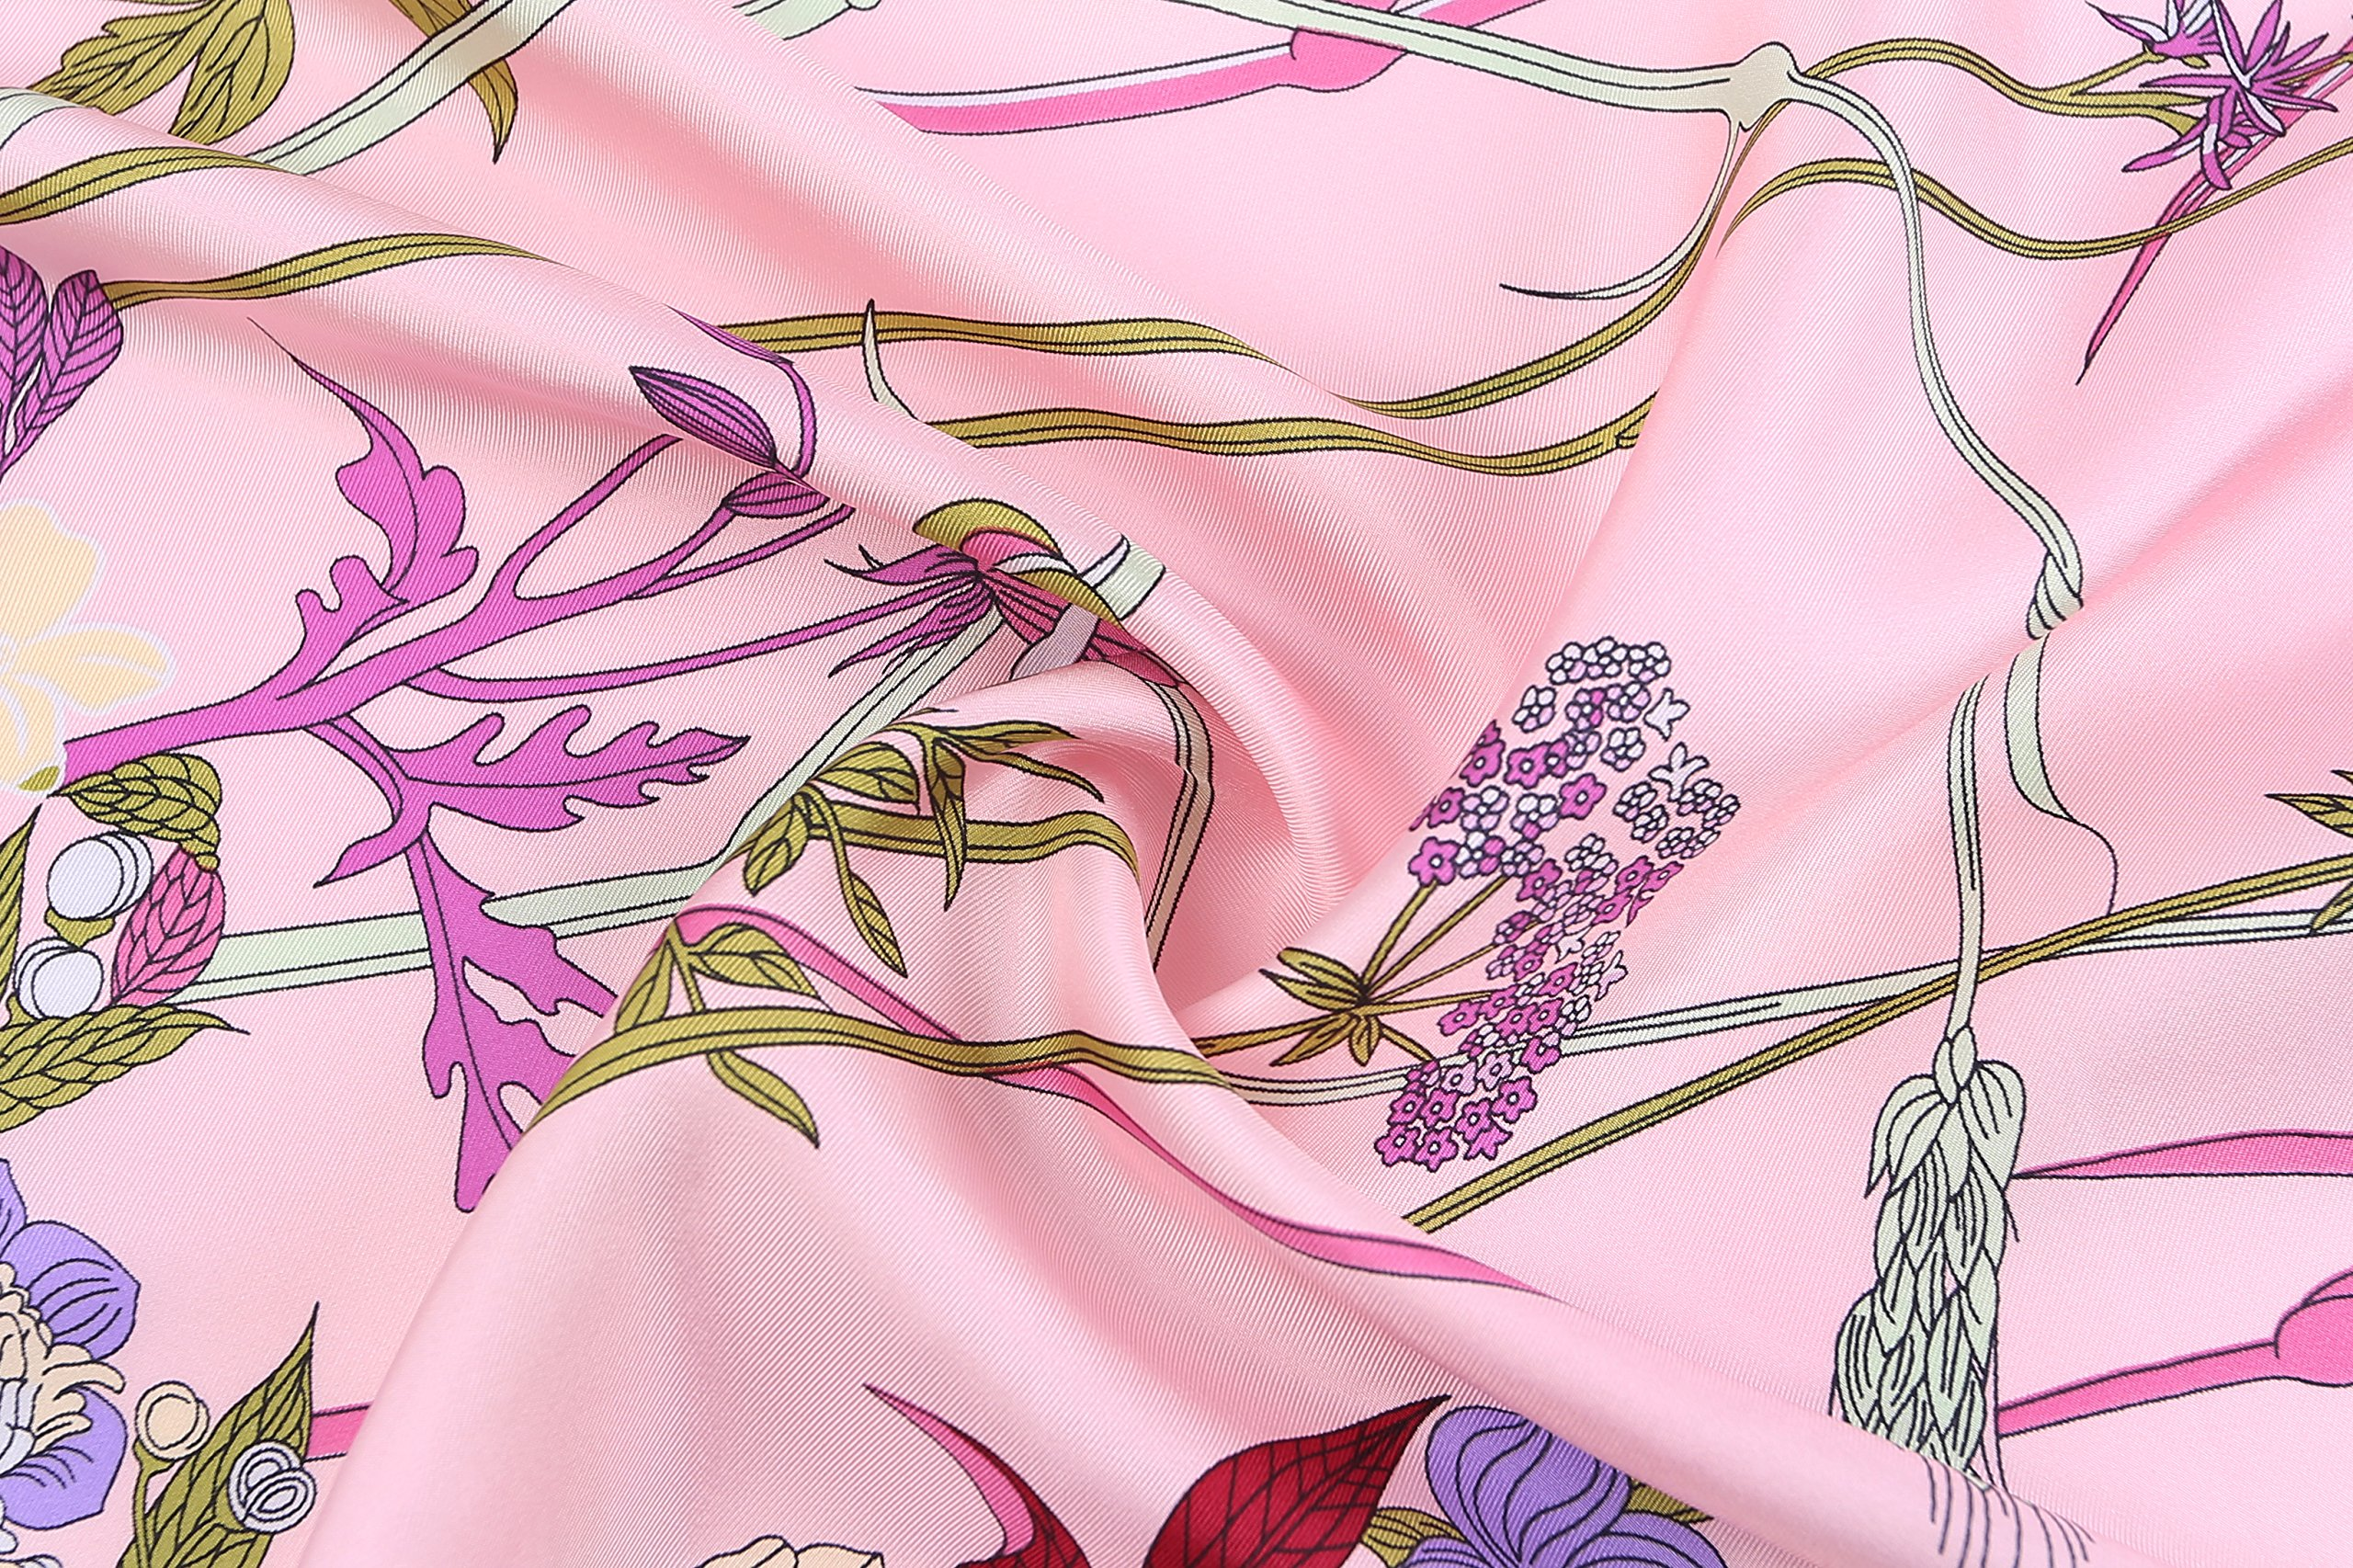 Jeelow 100% Pure Silk Scarf Scarves For Men & Women 36in Square Silk Twill Scarfs For Hair Gift Packaging by Jeelow (Image #4)